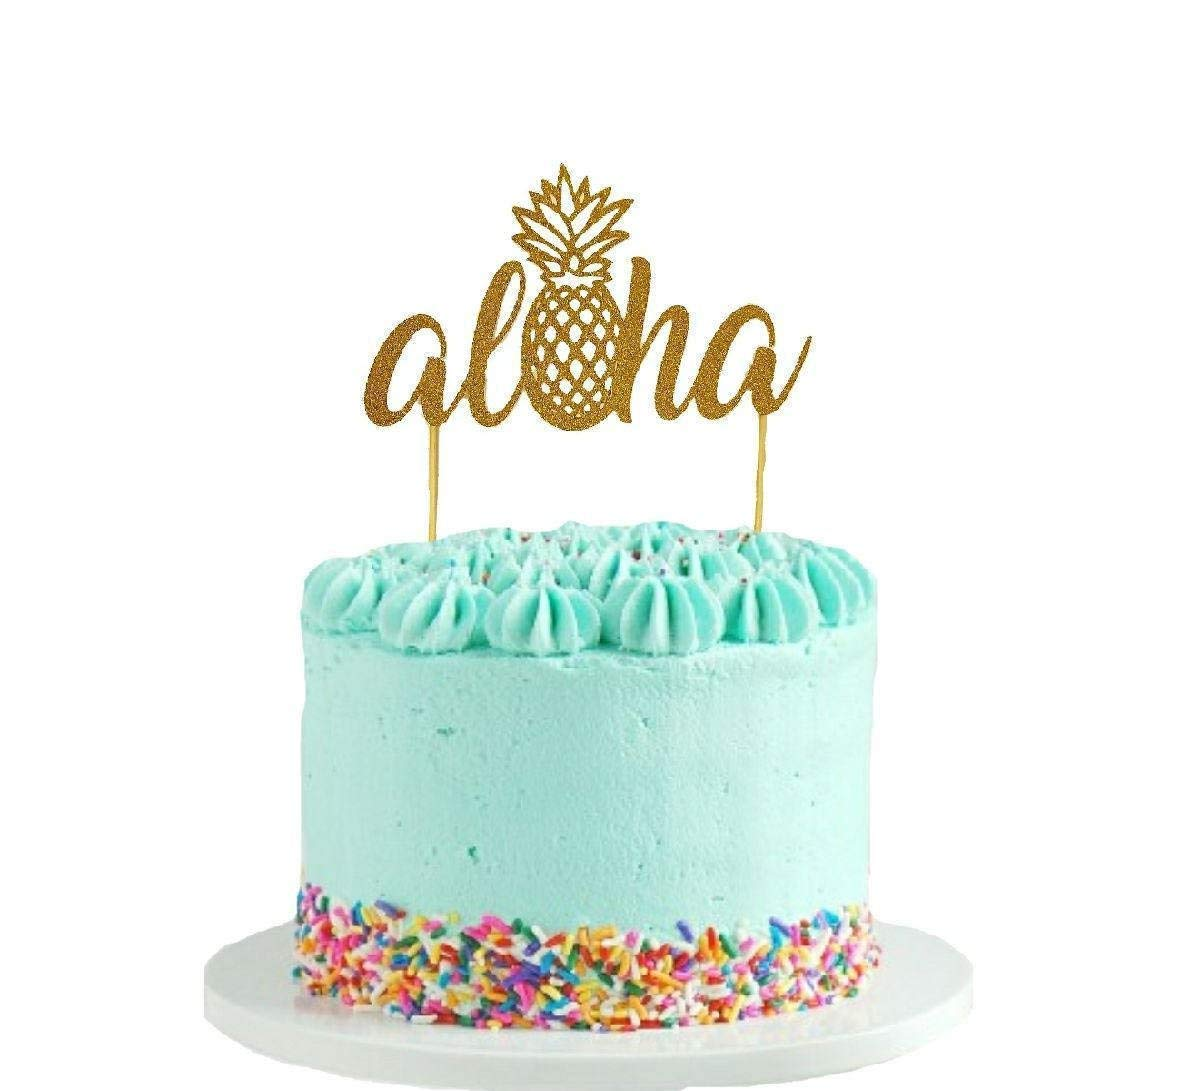 Astounding Amazon Com Aloha Cake Topper Aloha Cake Topper Tropical Party Funny Birthday Cards Online Barepcheapnameinfo